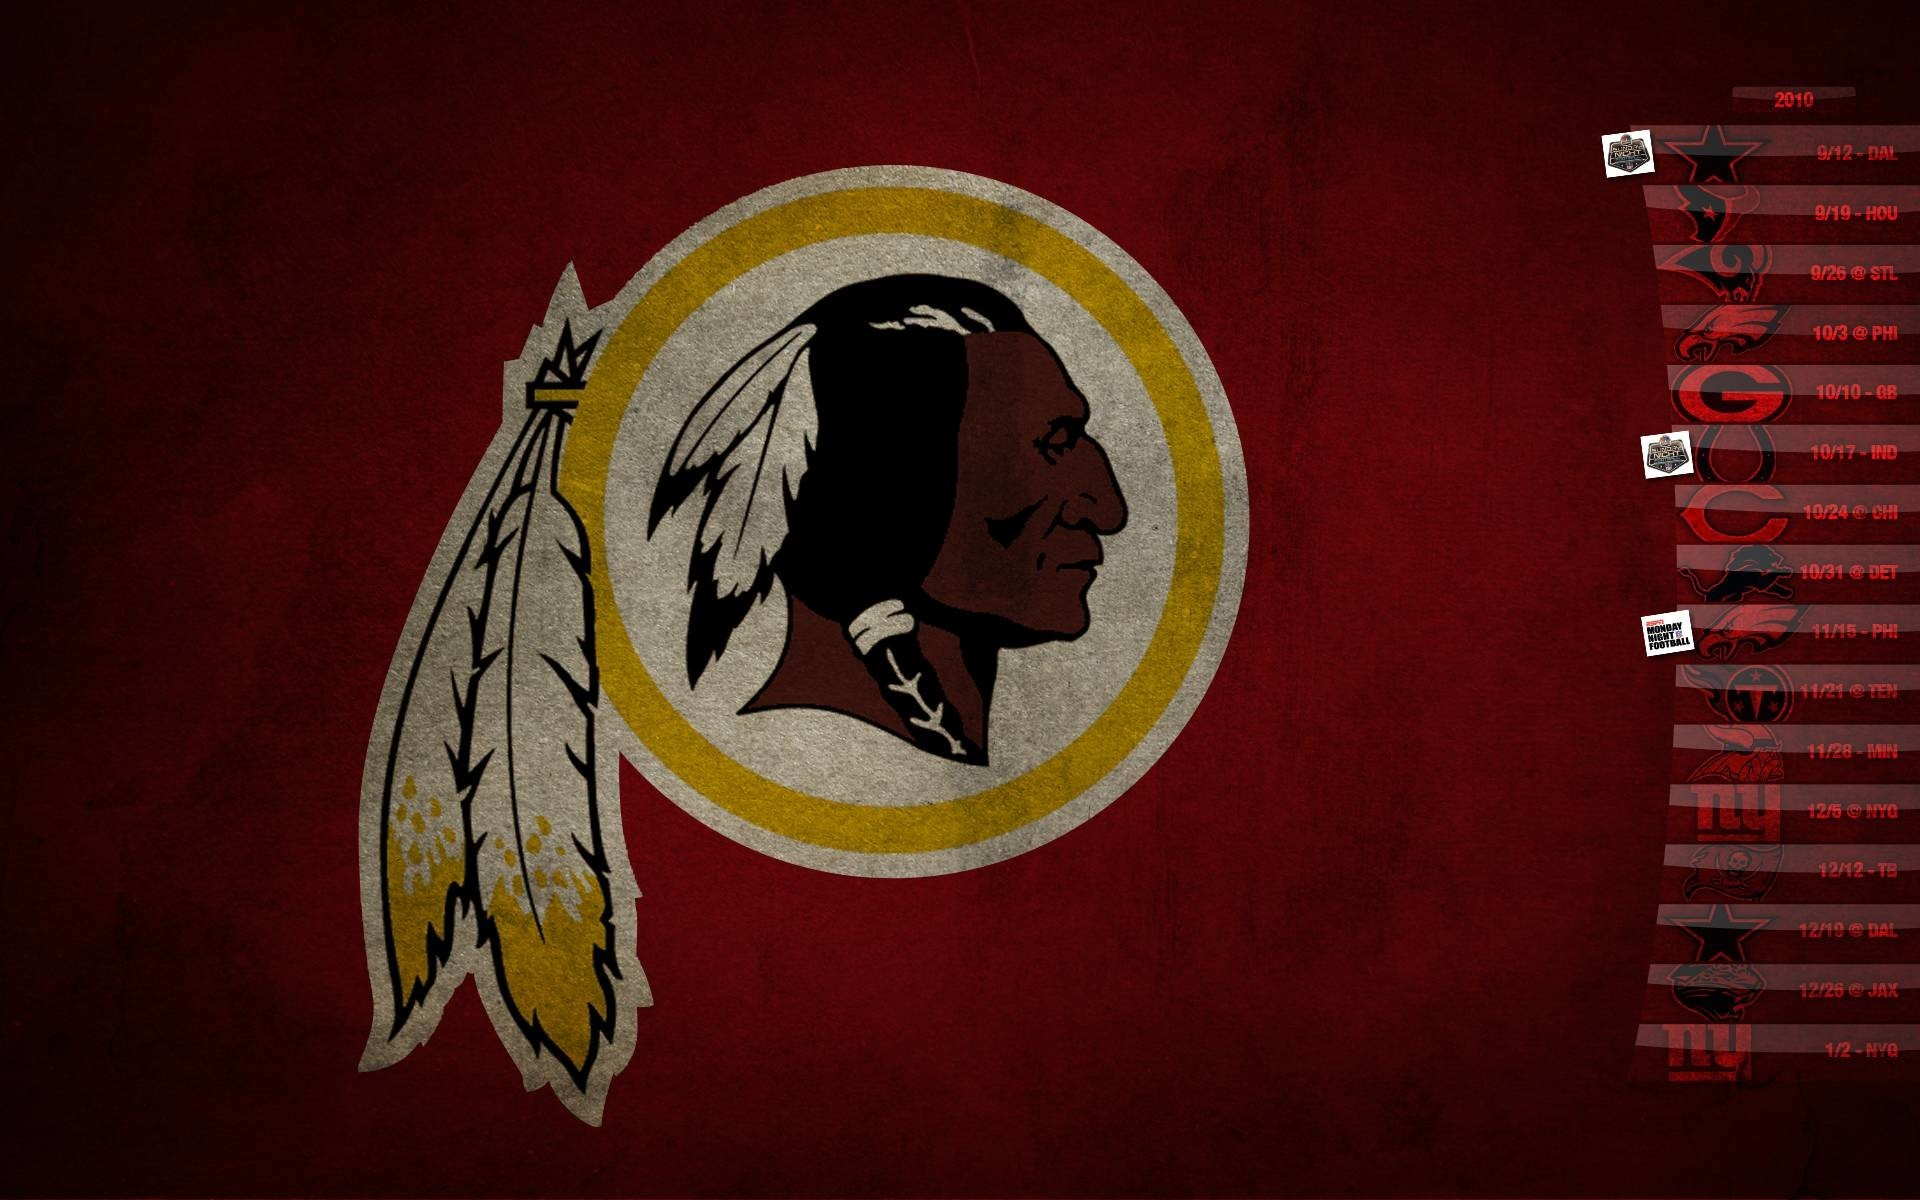 download Redskins Wallpaper for Android 67 images [1920x1200 1920x1200